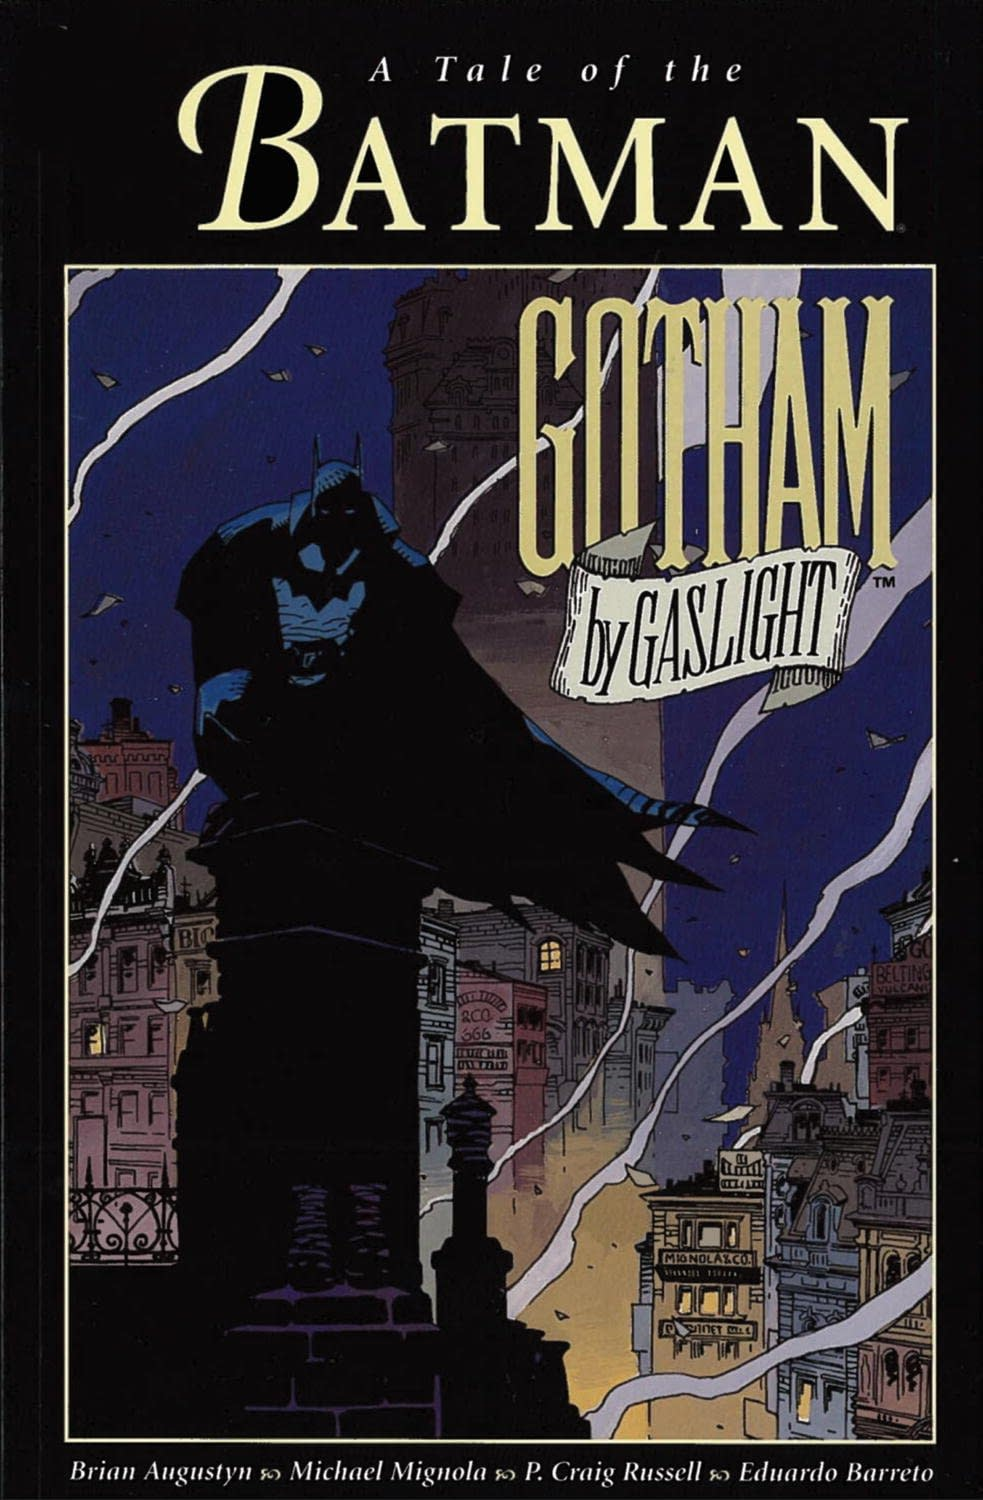 Here's A Sneak Peak At The 'Gotham By Gaslight' Animated Film From The 'Batman And Harley' DVD